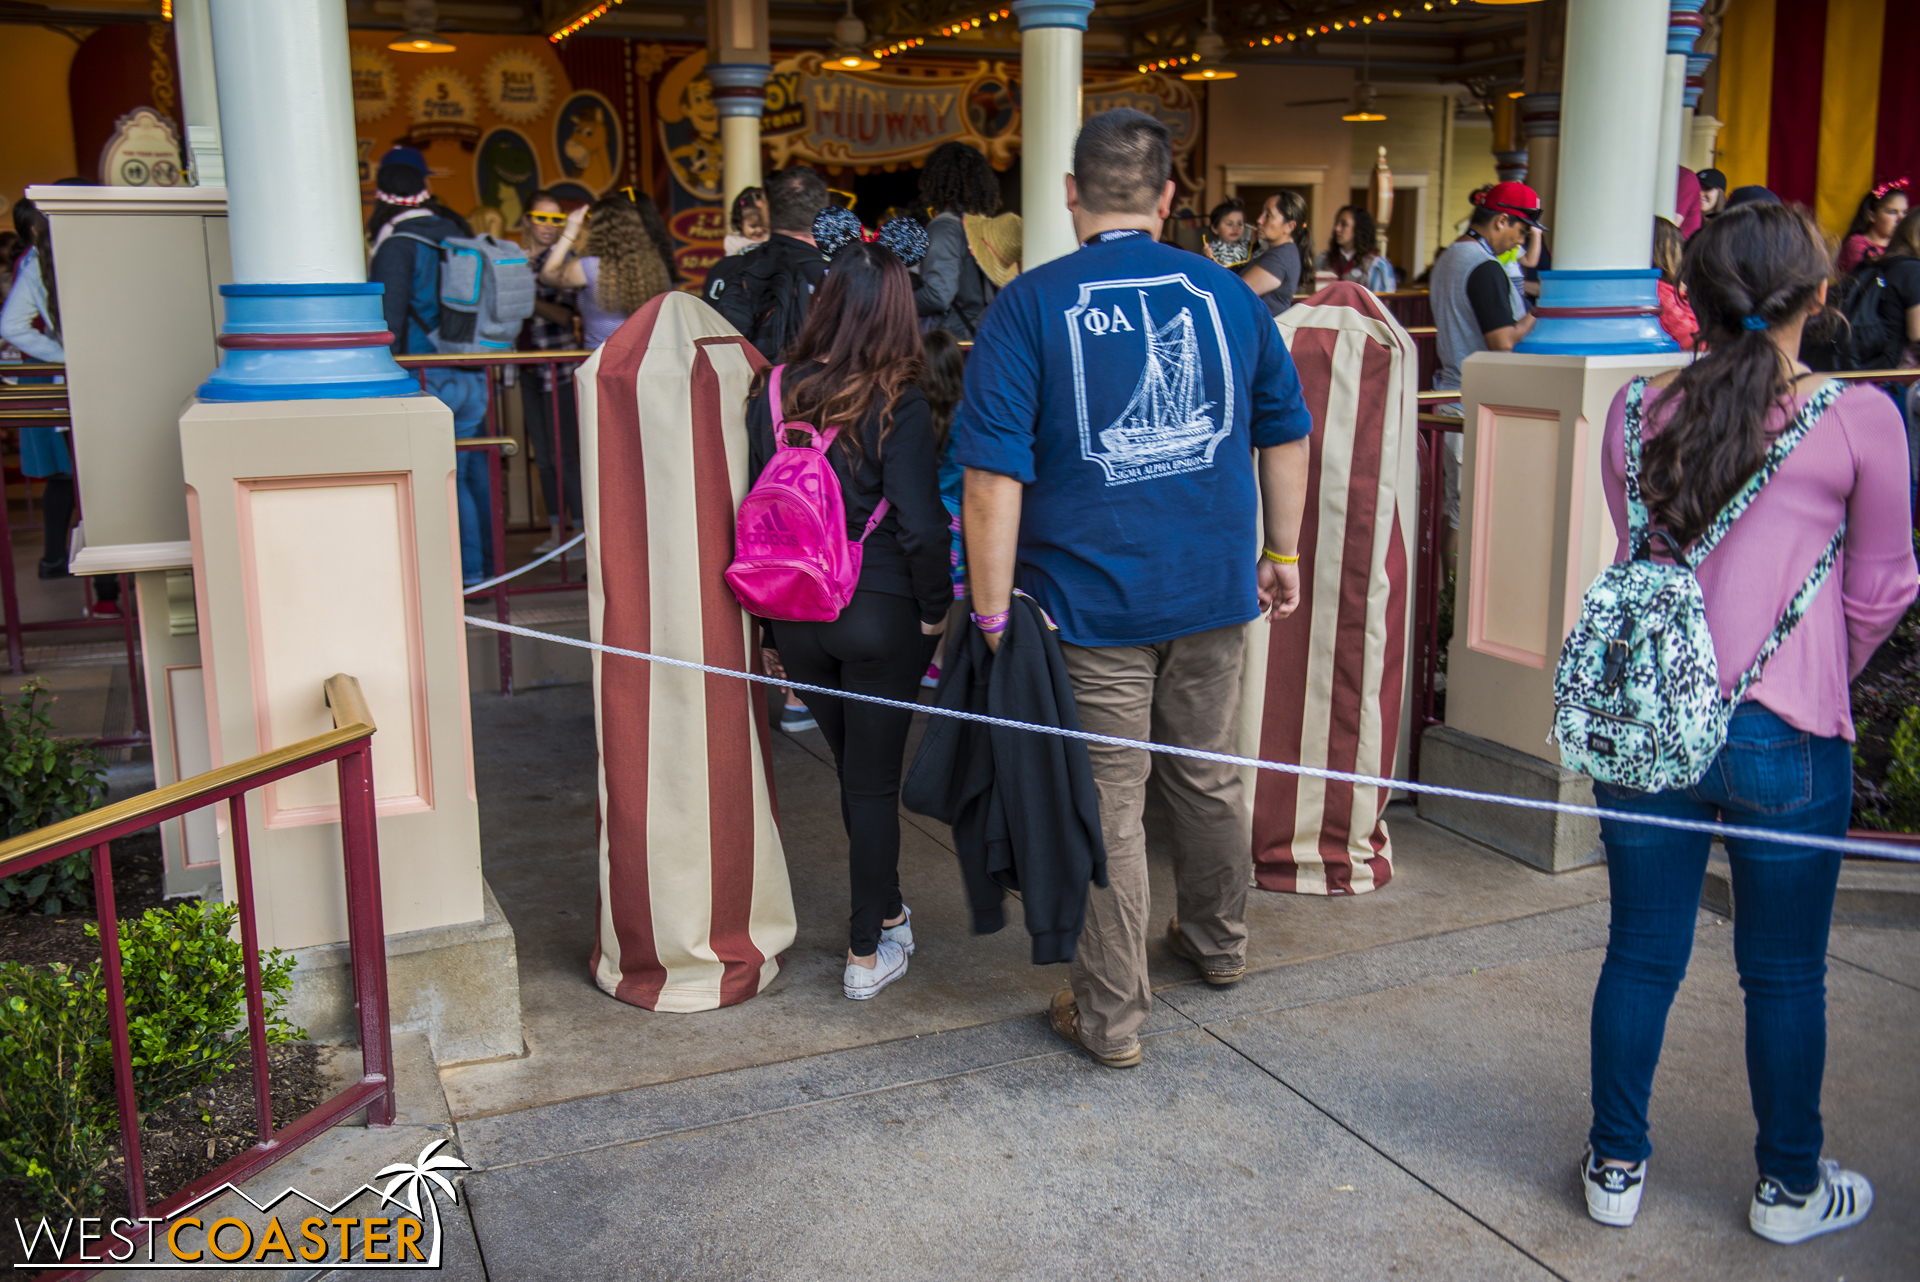 Toy Story Midway Mania is getting FastPass, which also means MaxPass.